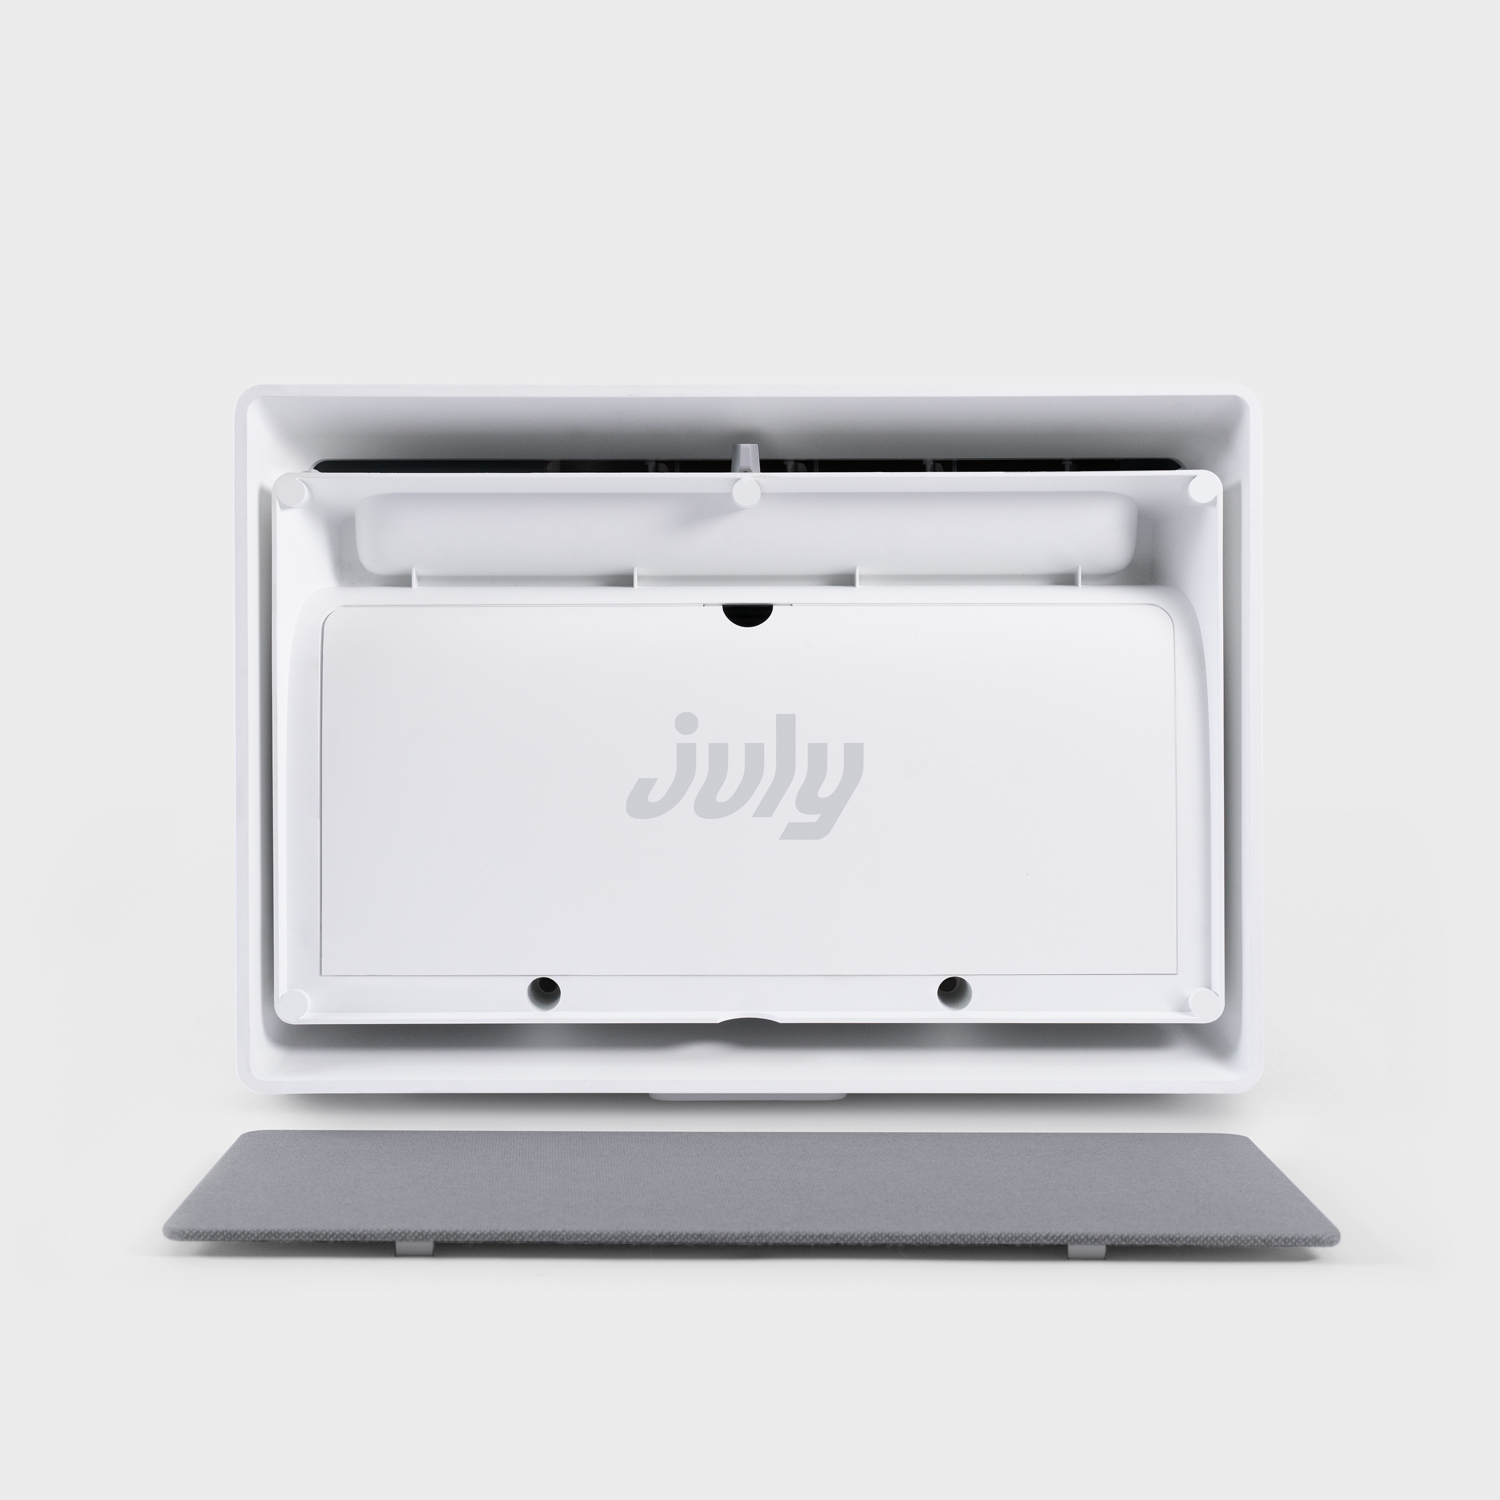 July Personalized Air Conditioner designed by Box Clever